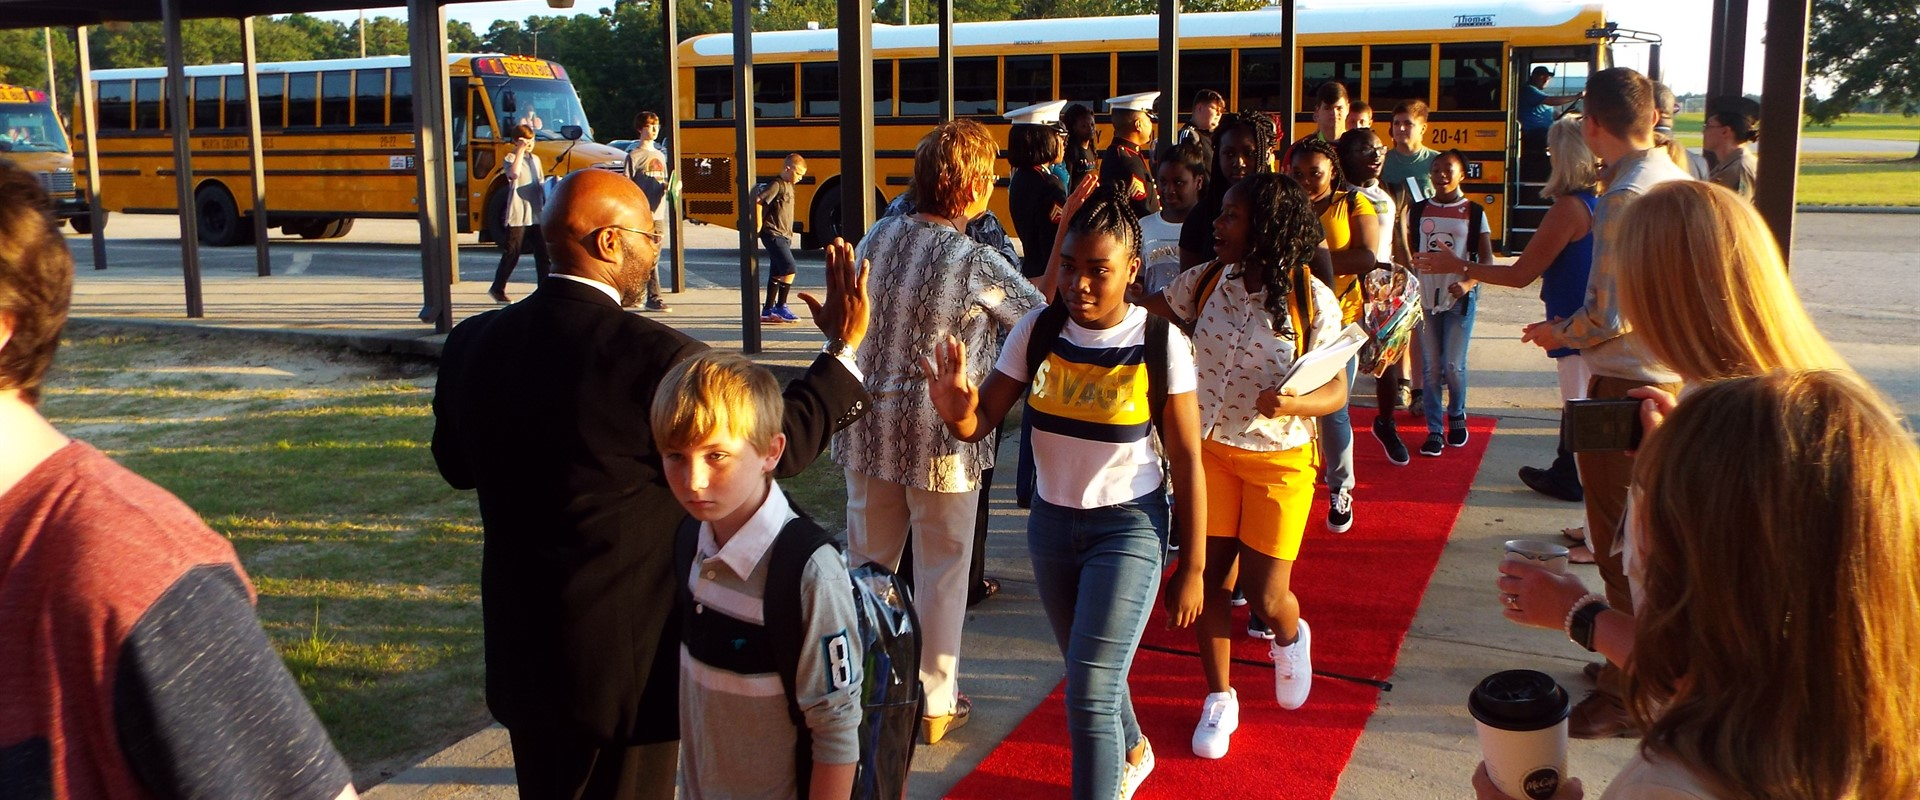 Frist Day of School 2019-2020